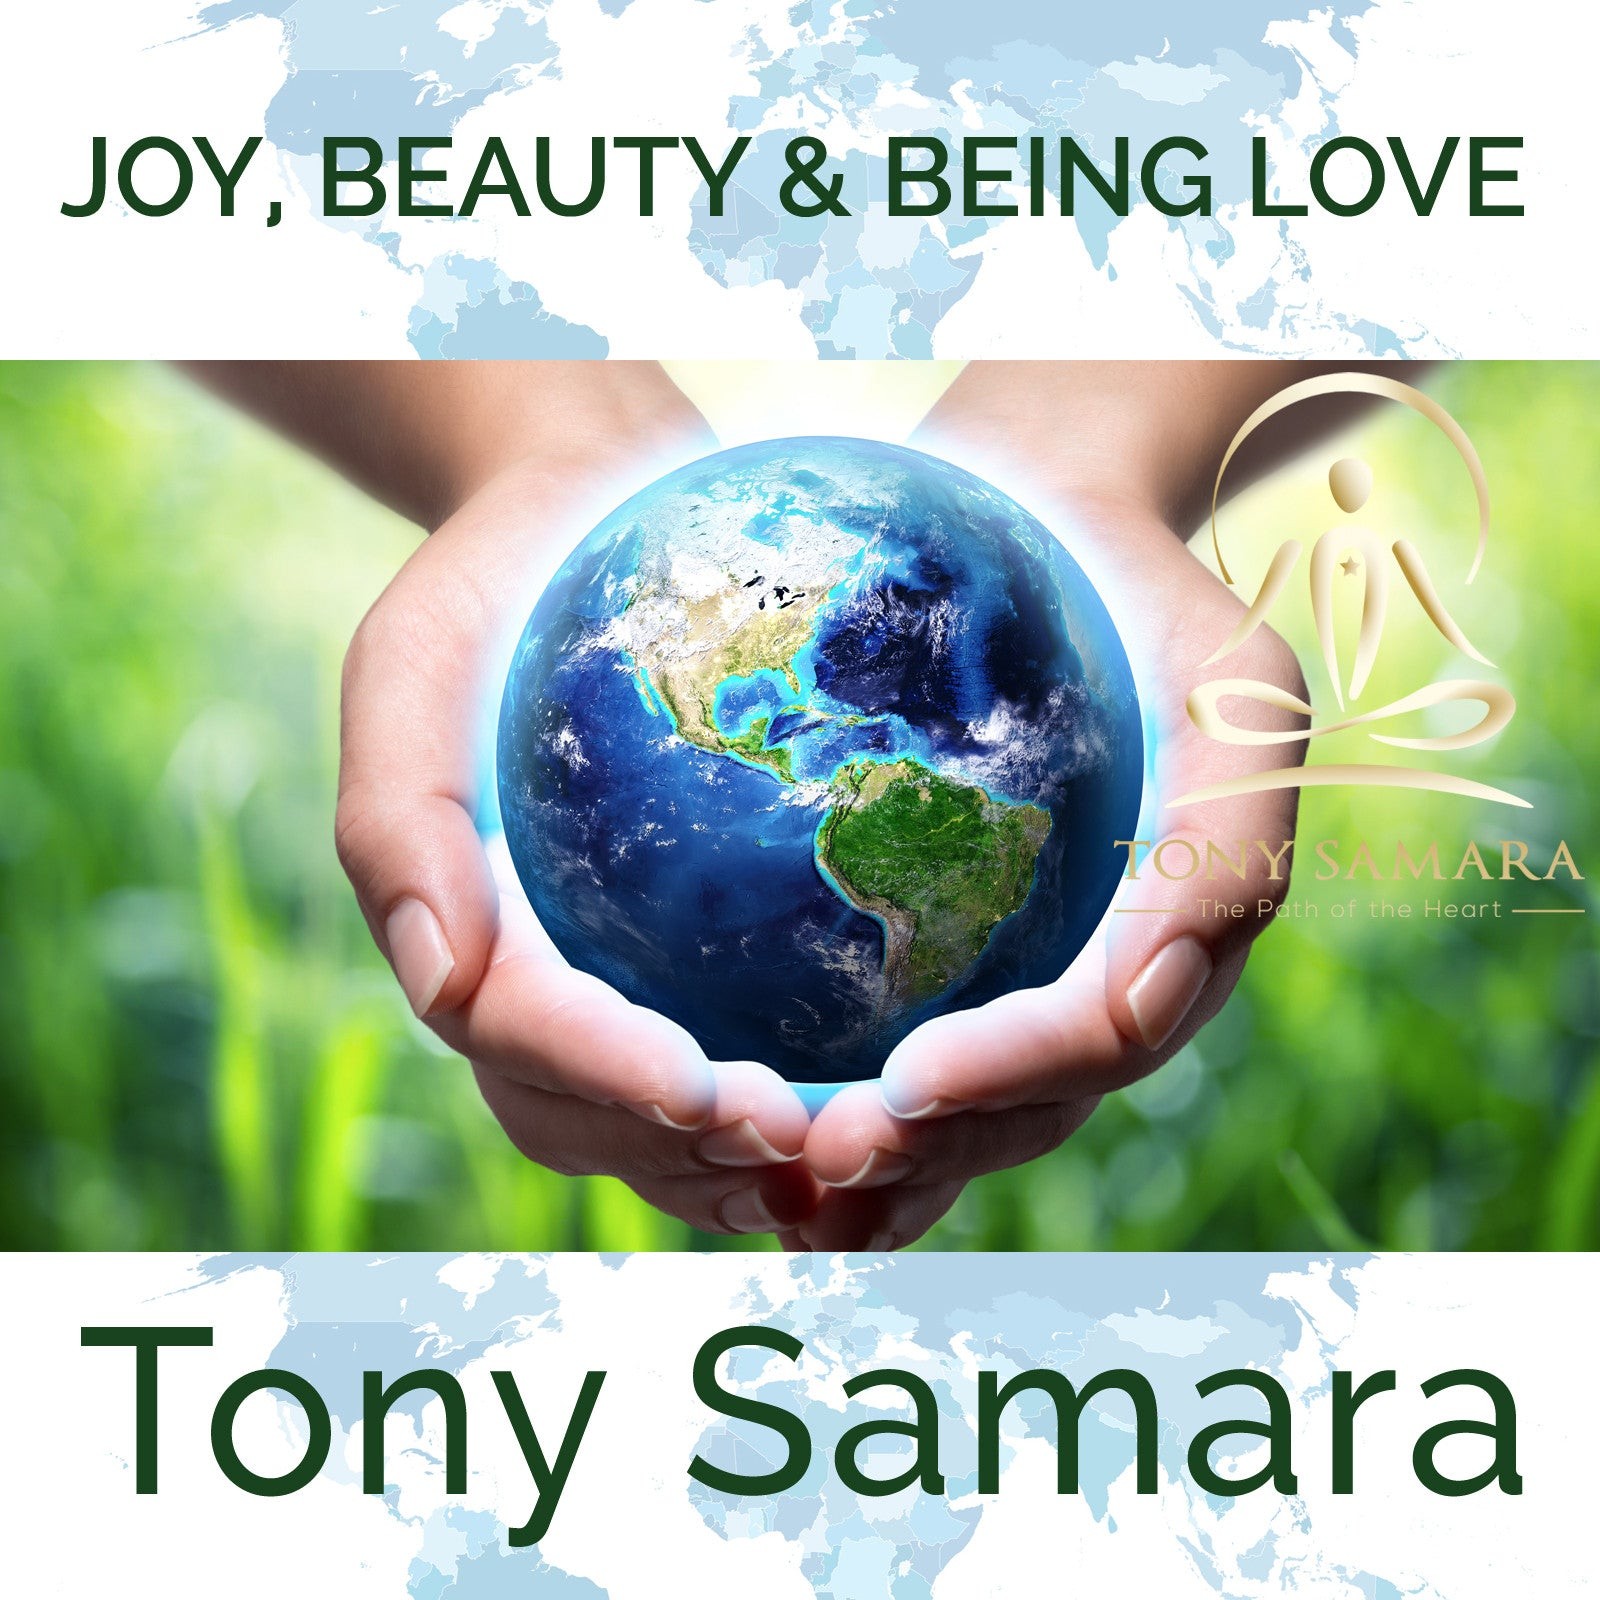 Joy, Beauty & Being Love (Realisation Meditation Inner Peace) (MP3 Audio Download) - Tony Samara Meditation